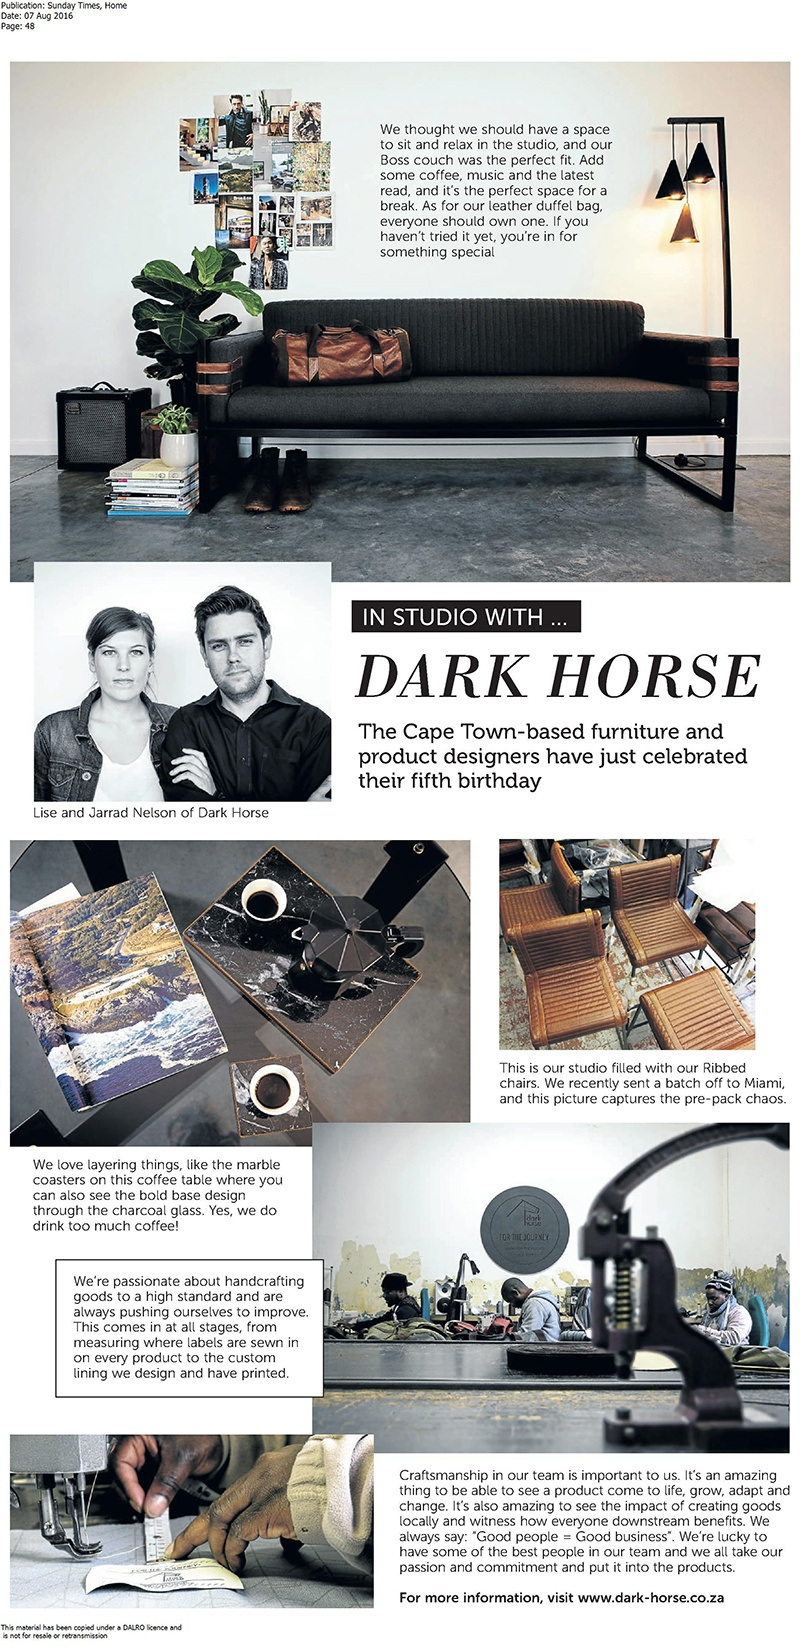 Dark Horse - Sunday times feature